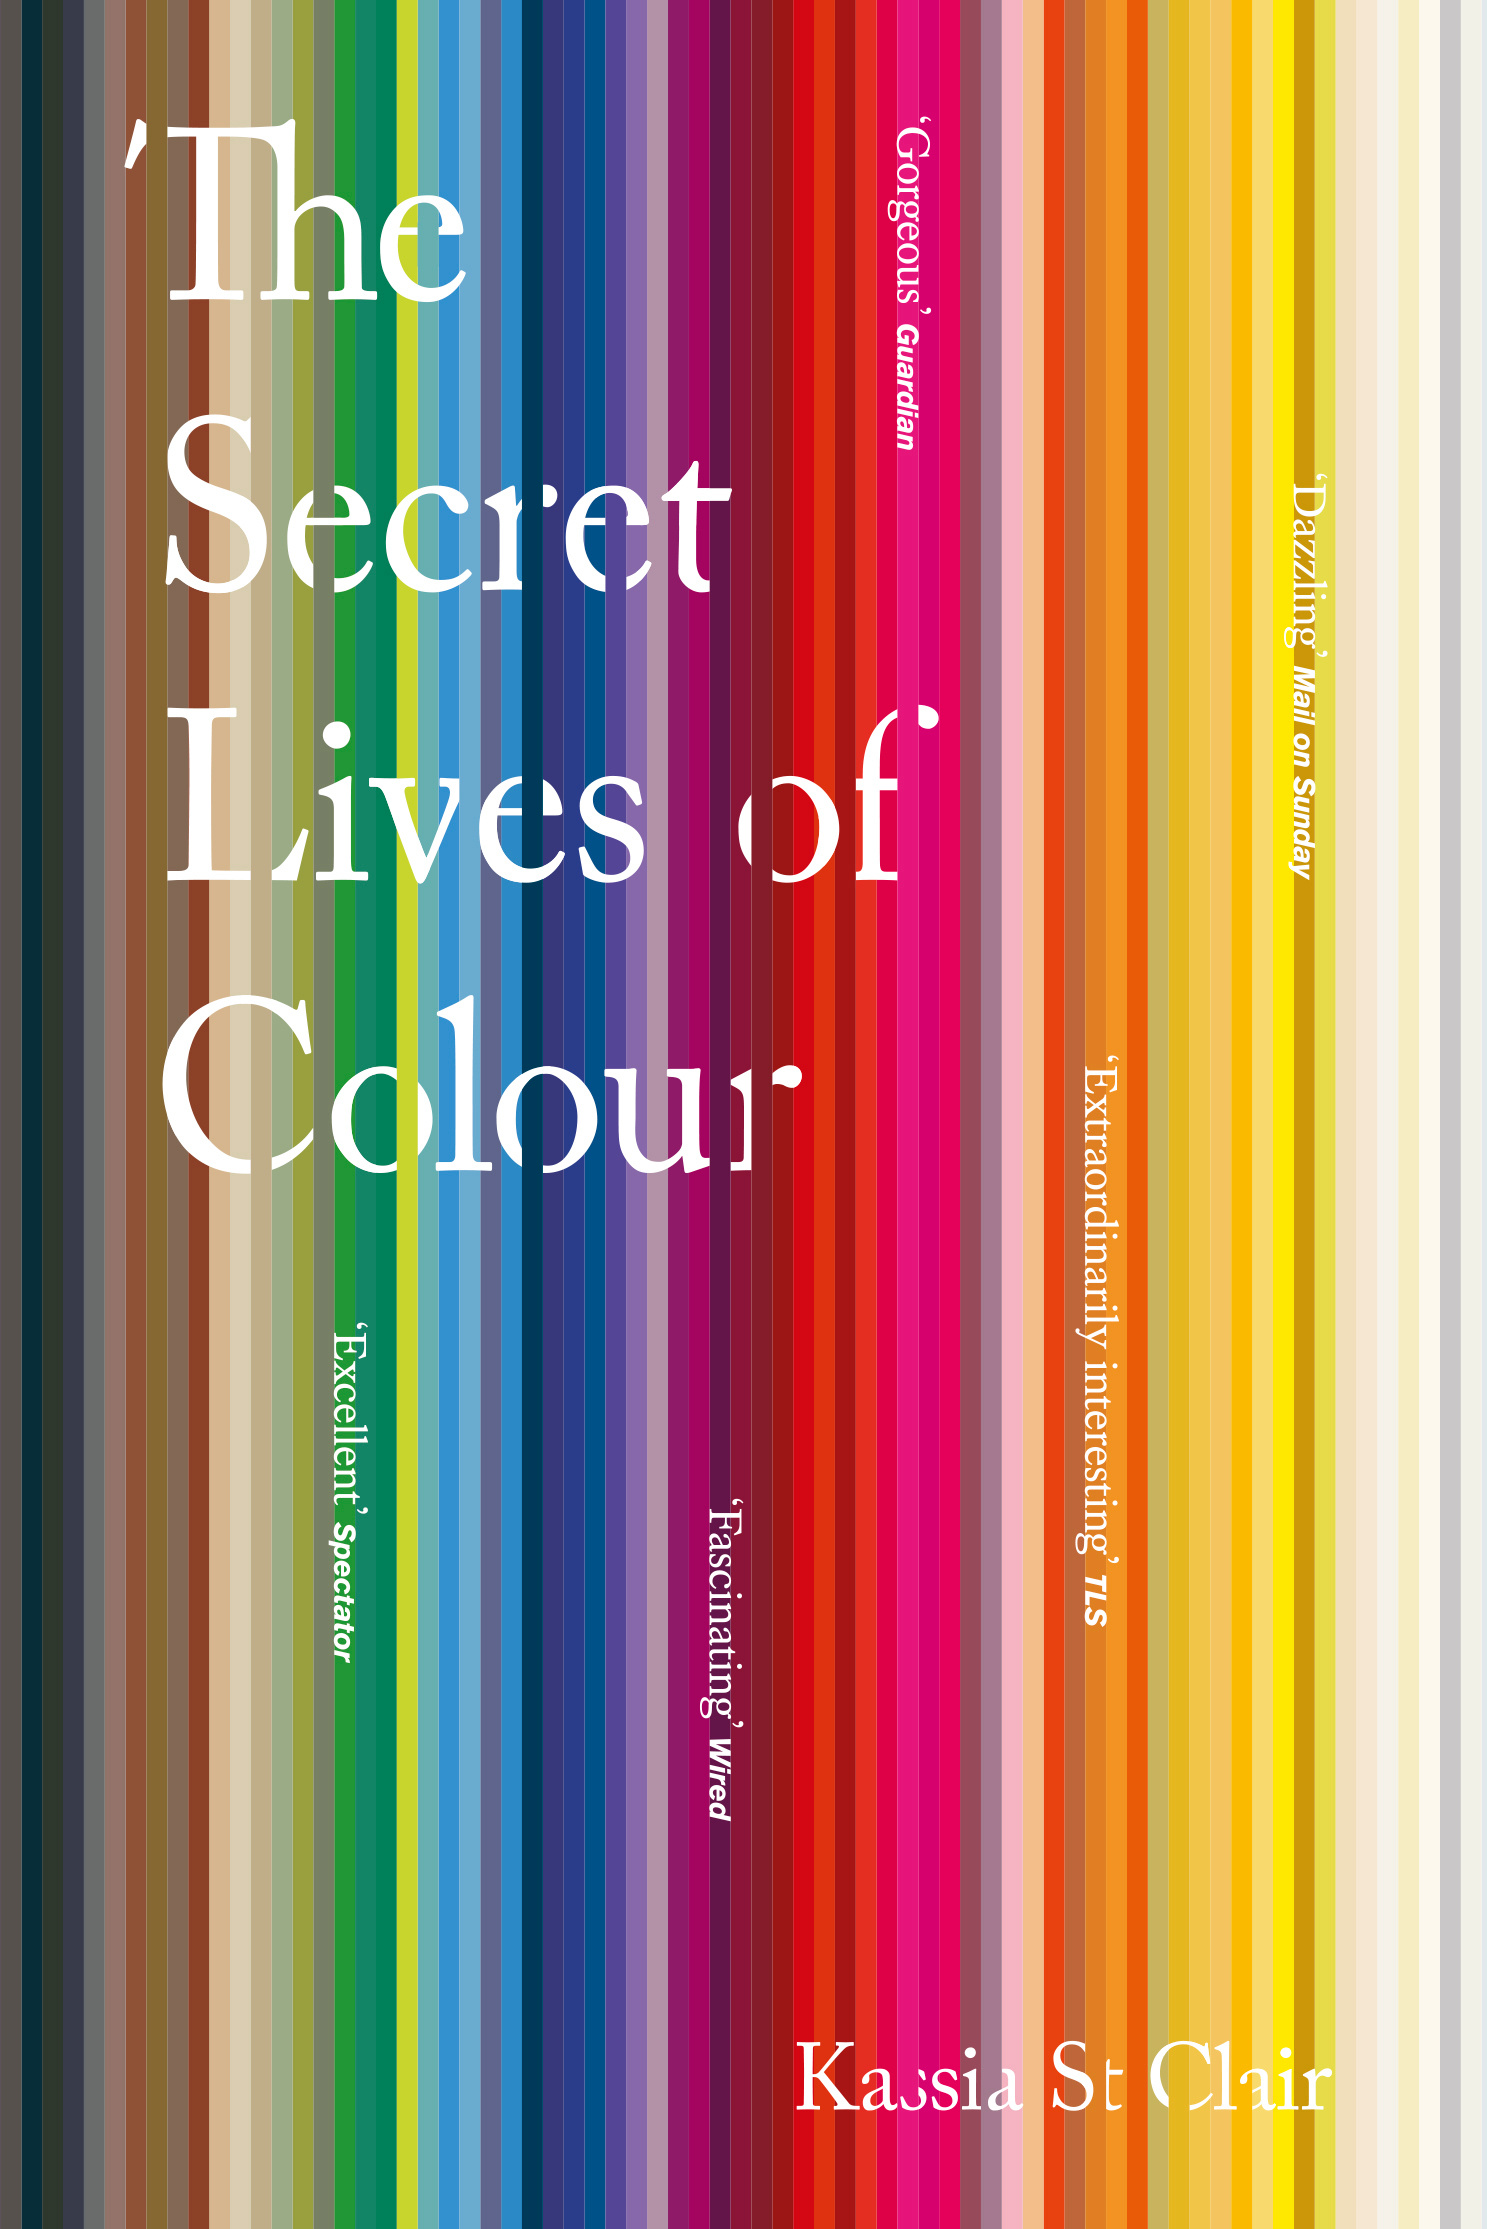 The Secret Lives of Colour by Kassia St Clair, ISBN: 9781473630833